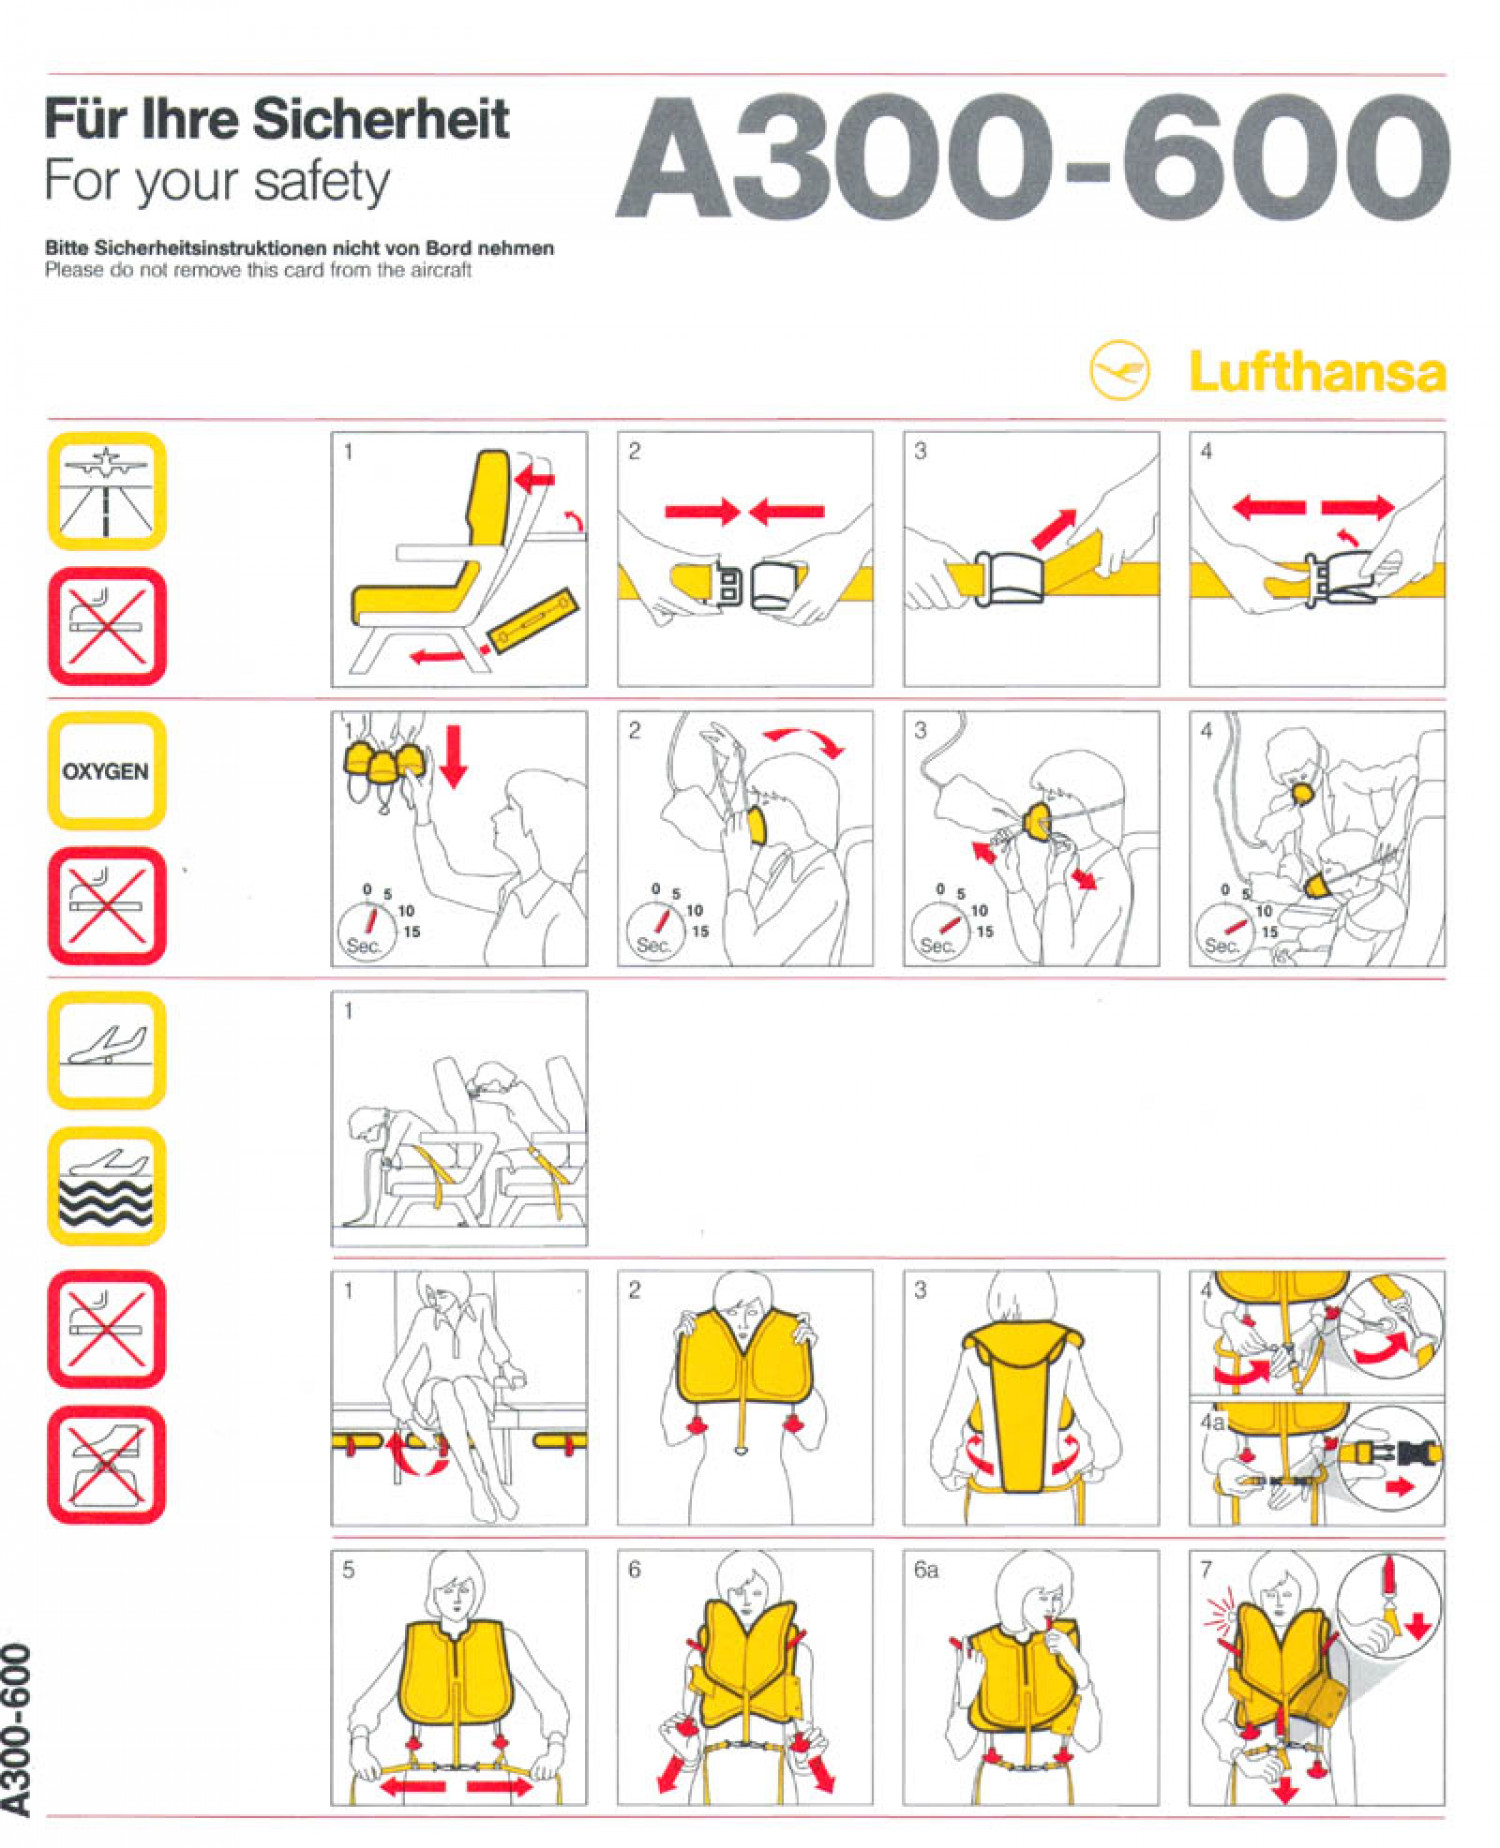 For Your Safety Luftansa Airlines  Infographic